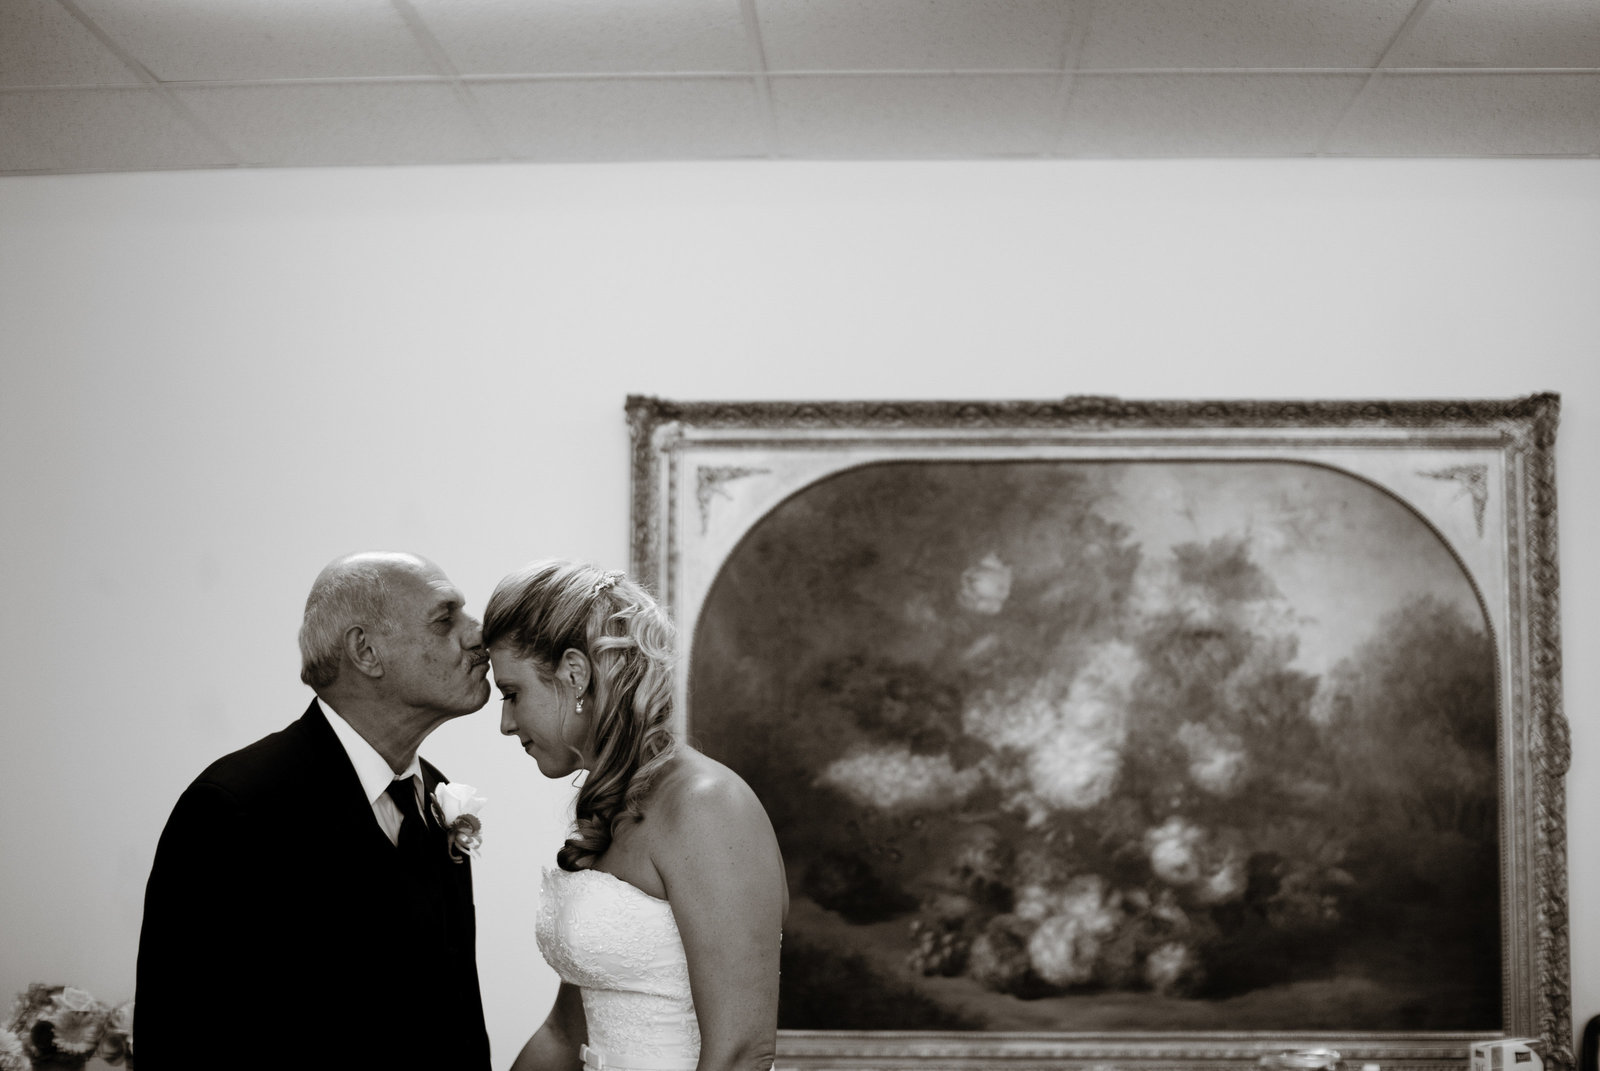 father of bride kisses her head before wedding